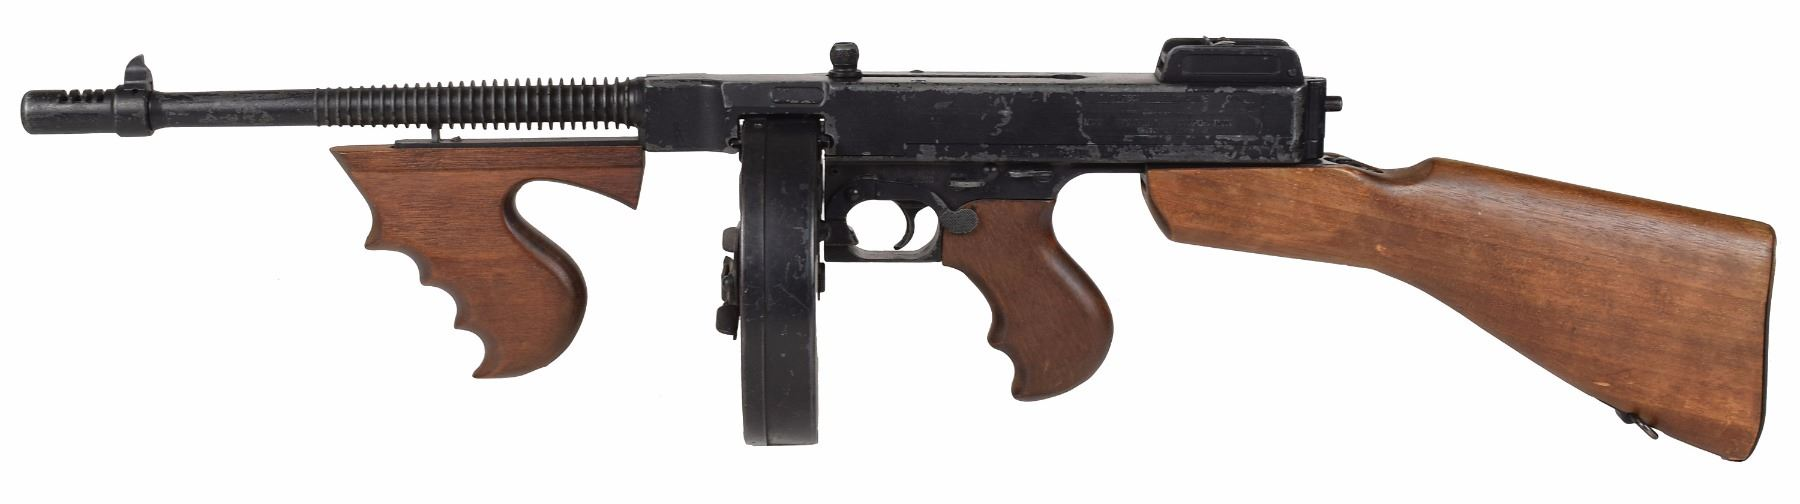 Bonnie and Clyde Prop Machine Gun from the 1967 Movie